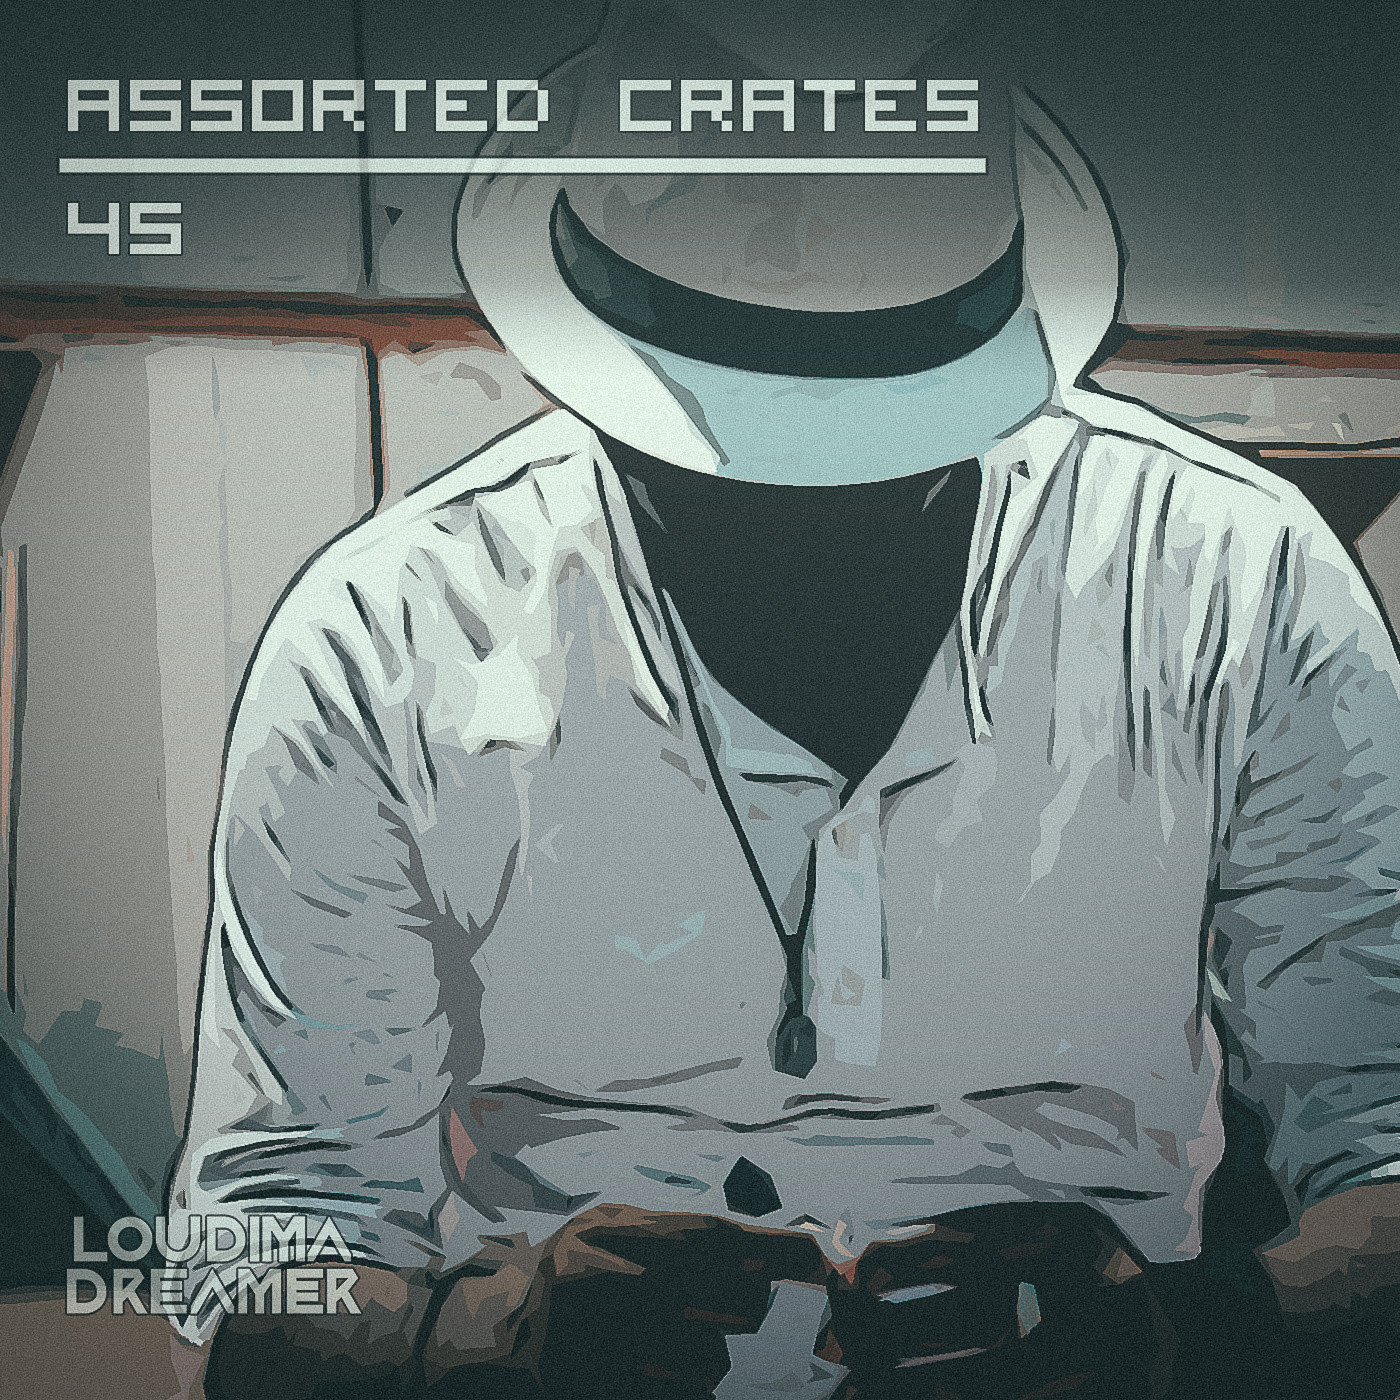 Assorted Crates #45